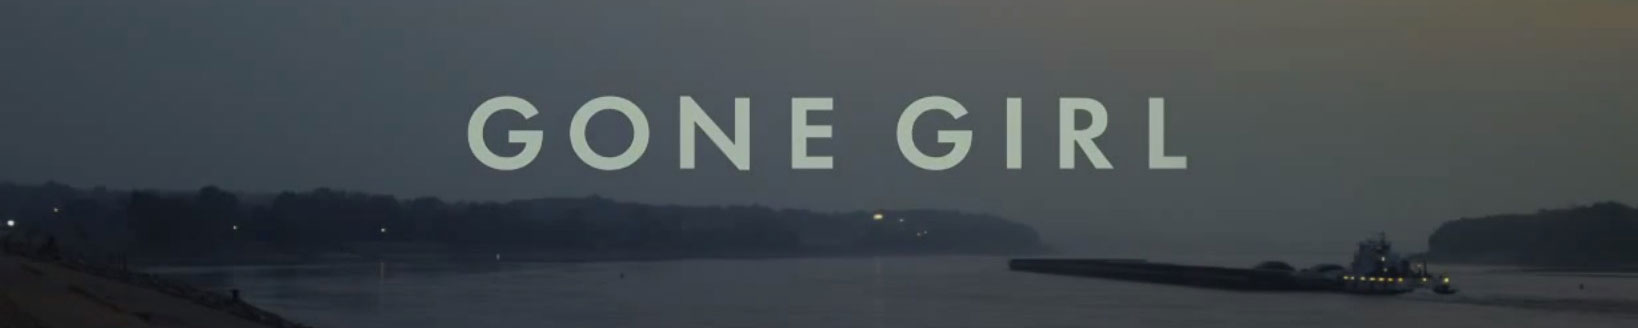 Gone-Girl-Review-2014